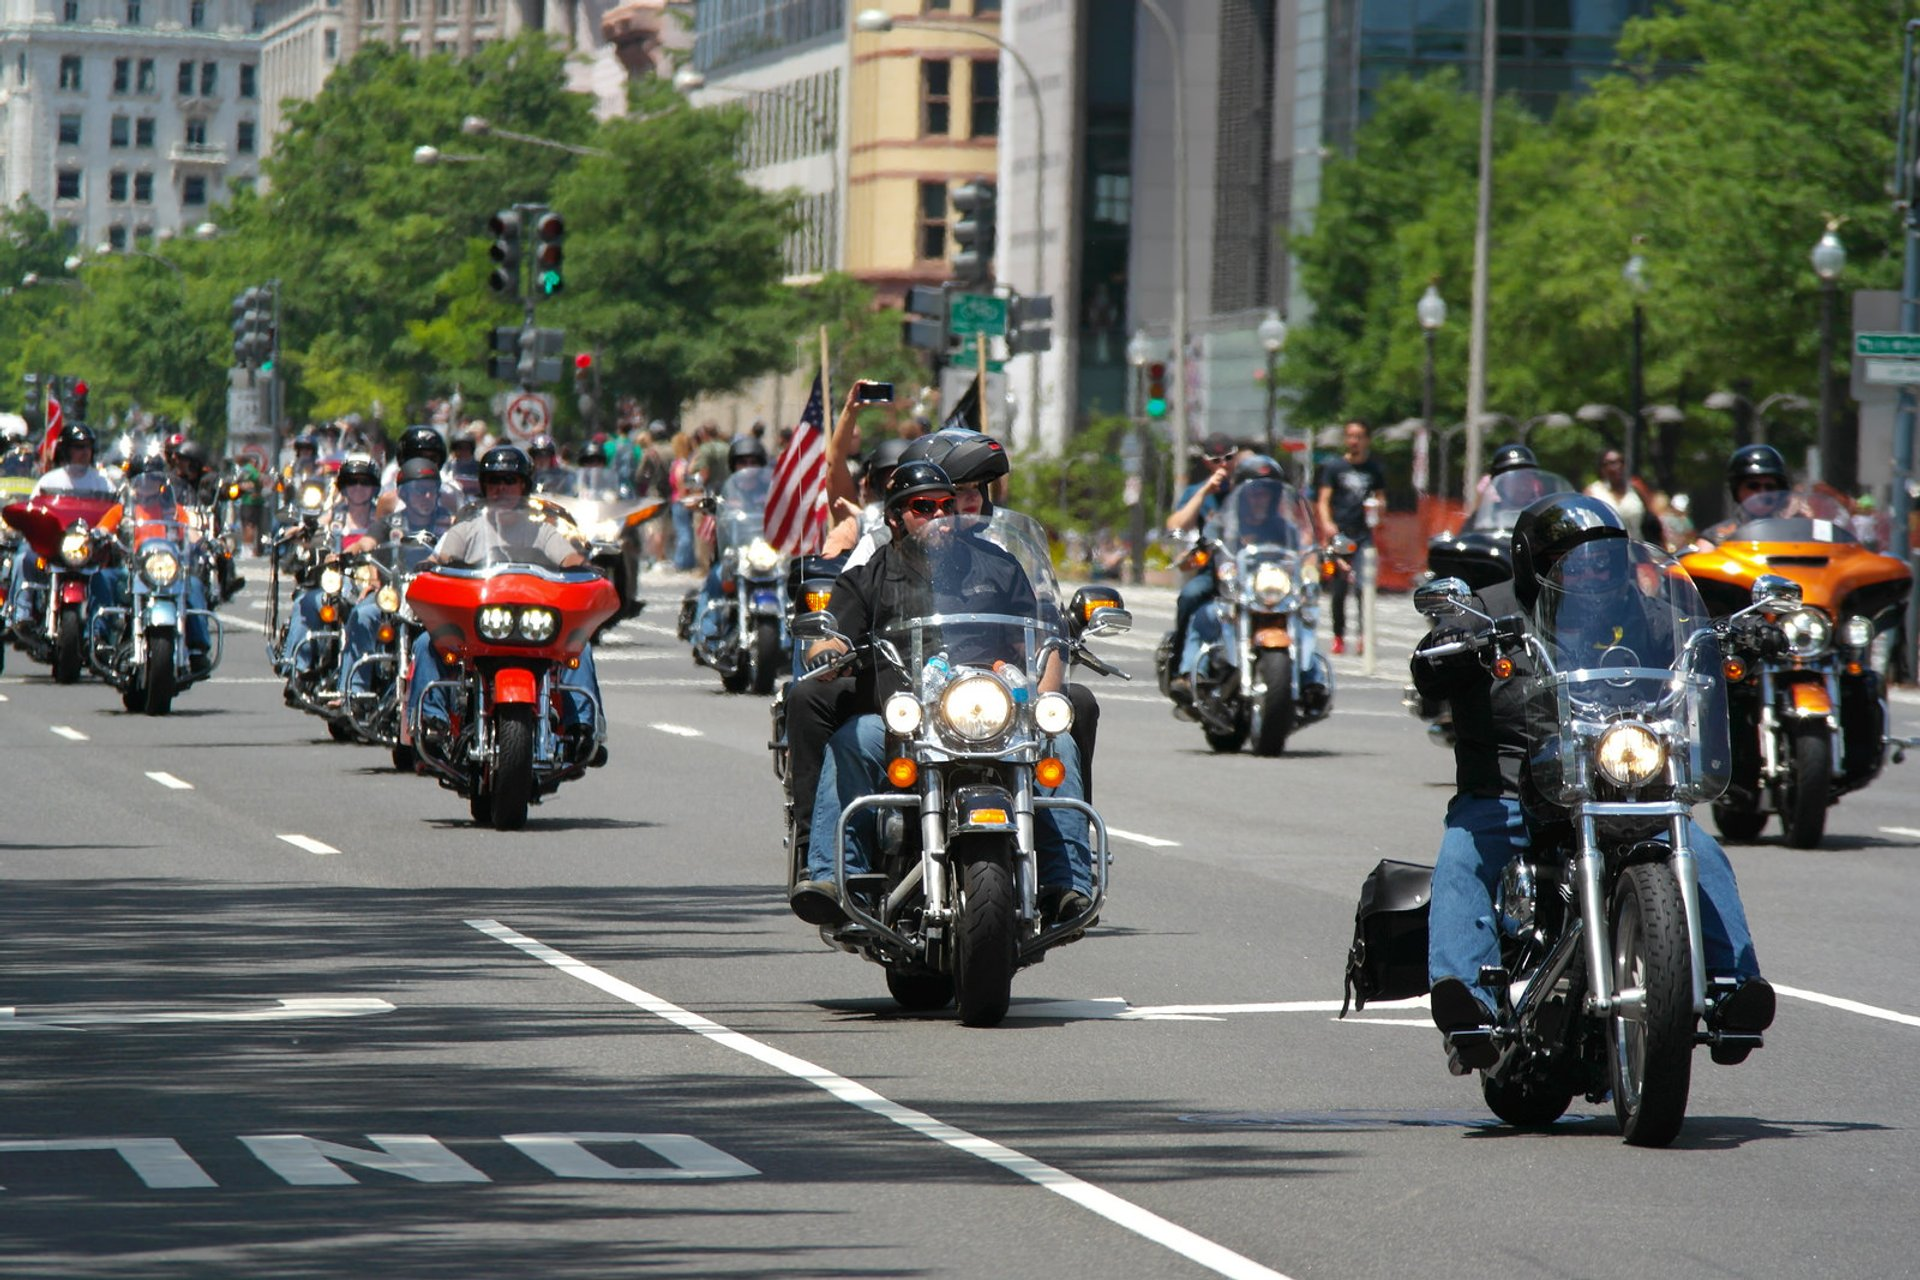 Rolling Thunder 'Ride for Freedom' in Washington, D.C. - Best Season 2019